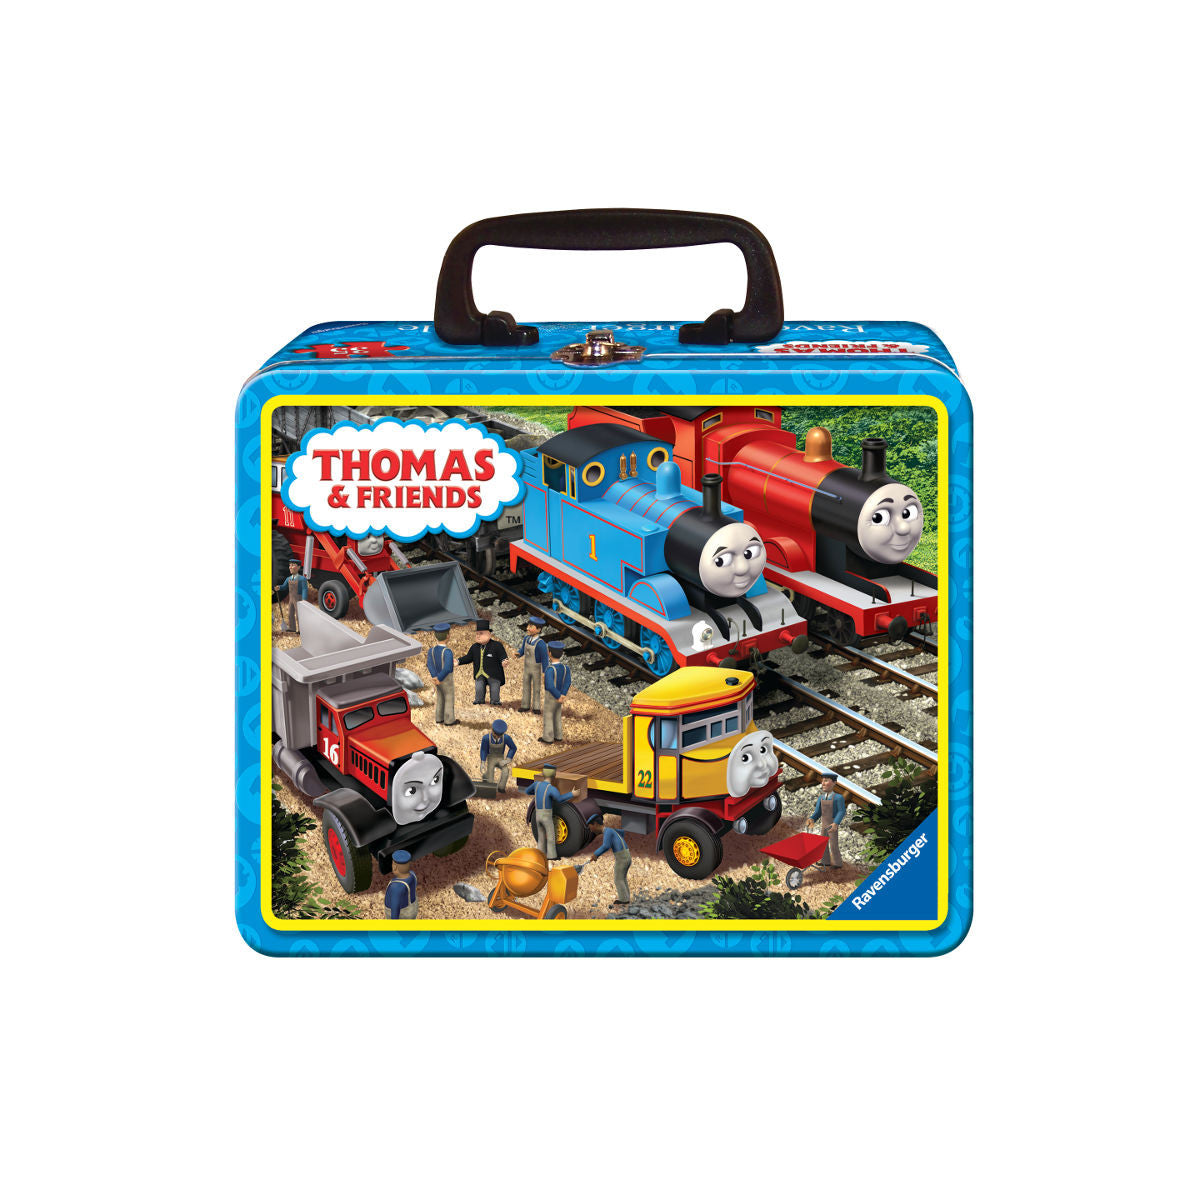 Ravensburger Thomas & Friends™ Making Repairs (35 pc Puzzle in a Tin) 08770